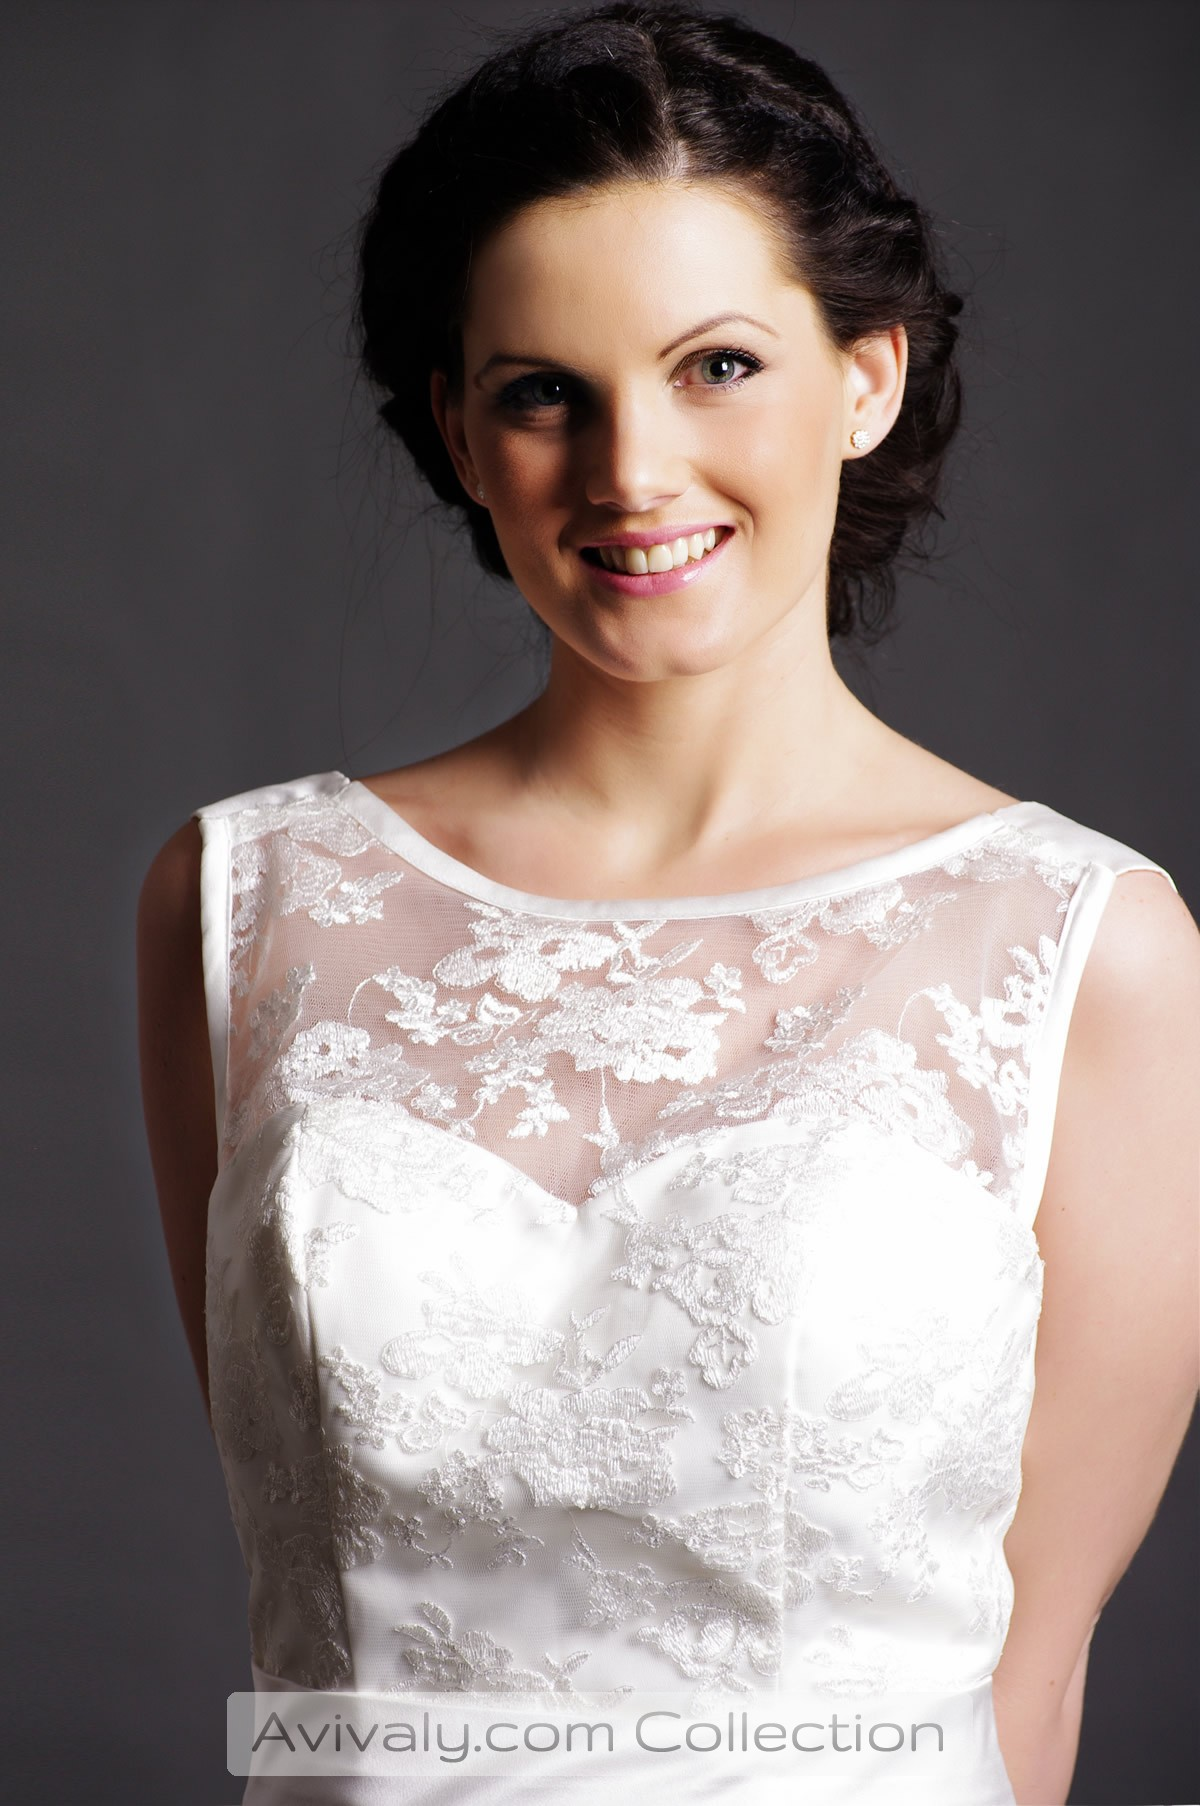 Jade - Lace on Sheer Bodice over a Satin Sweetheart